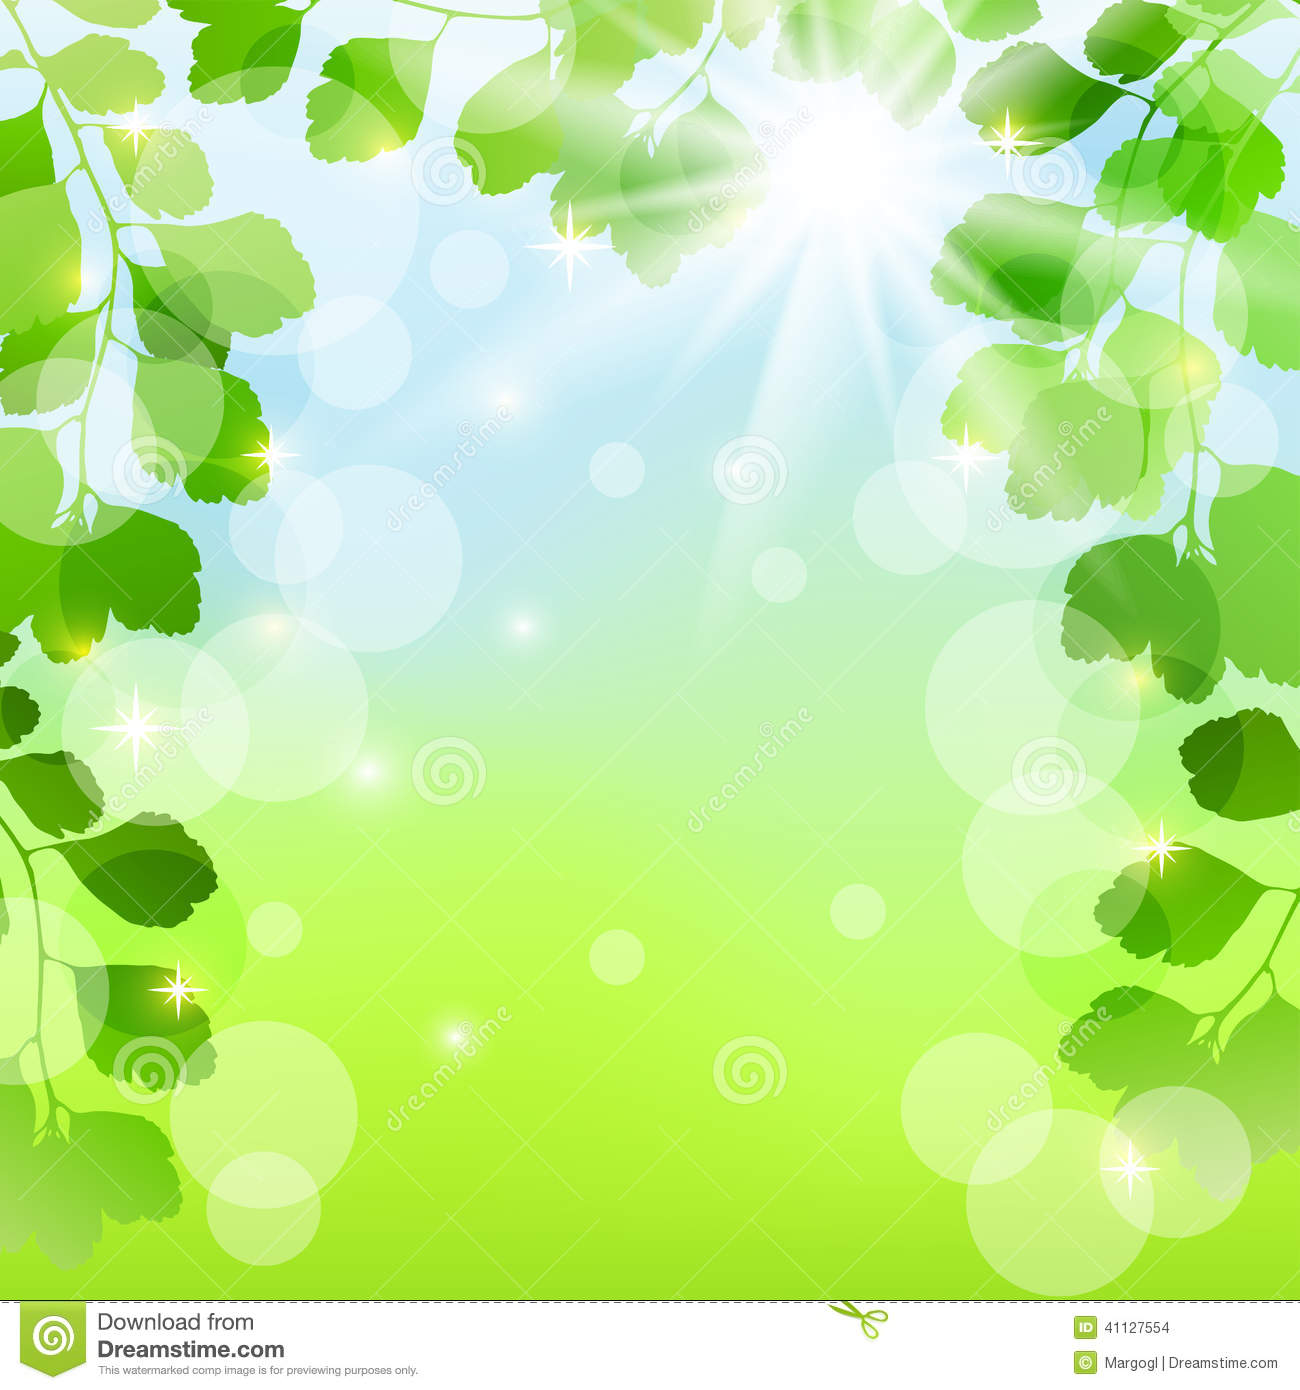 Green leaves free vector download (8,641 Free vector) for ...